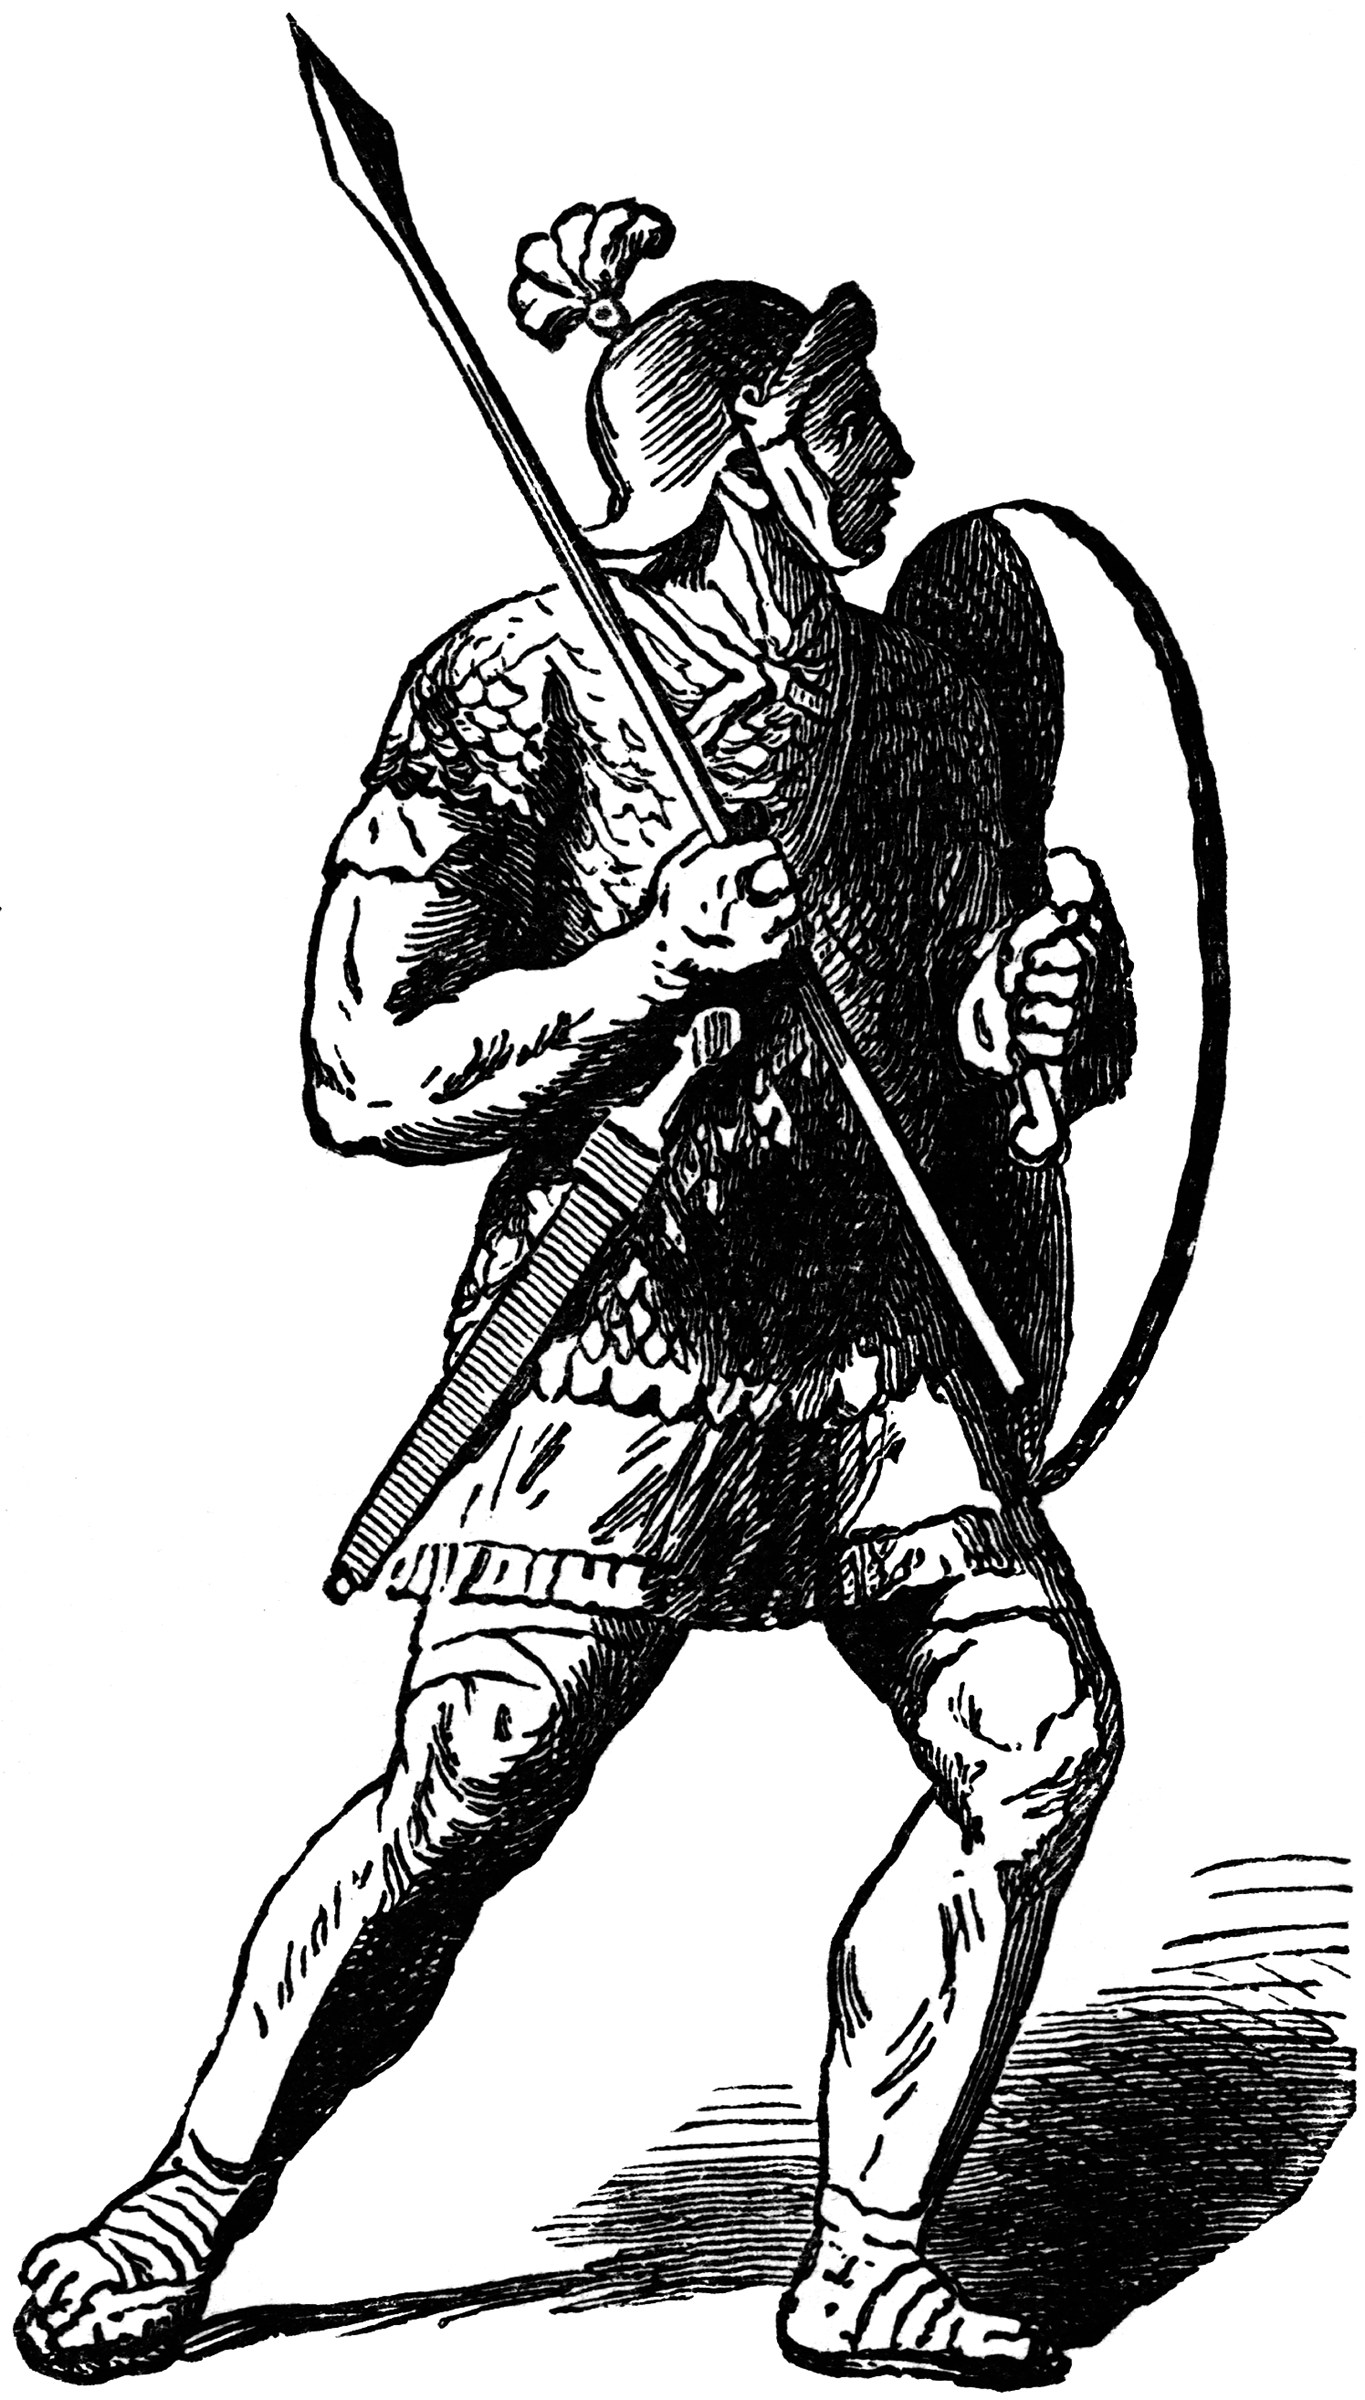 A Roman Soldier Or Legionary With A Short Javelin And